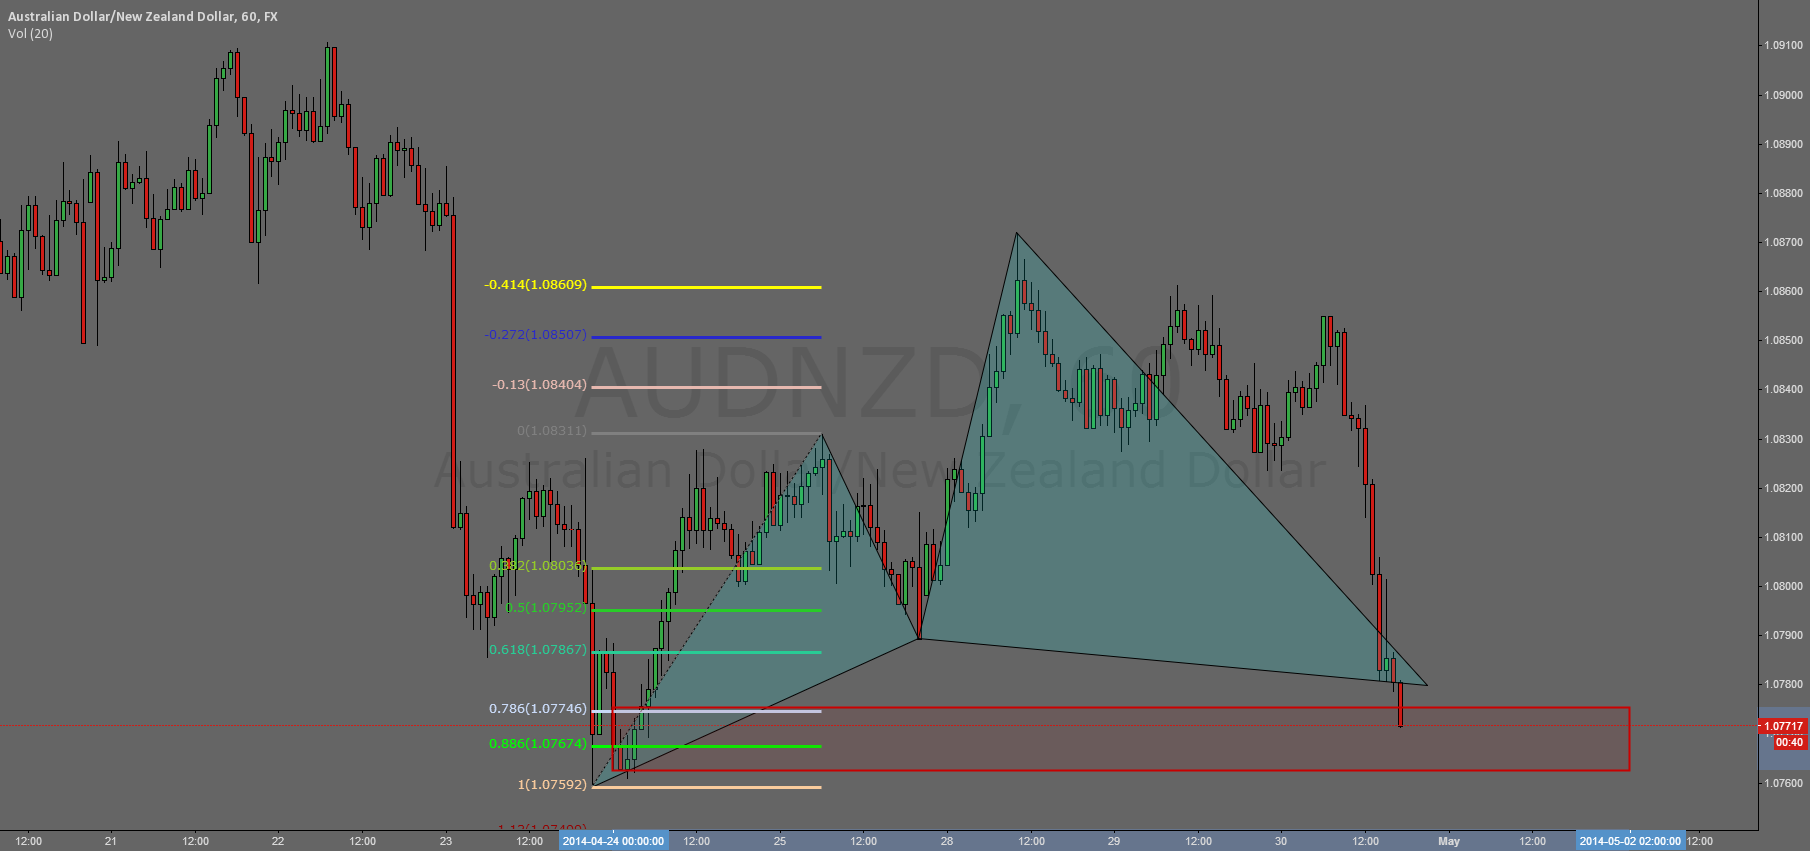 AUDNZD 60m bullish cypher